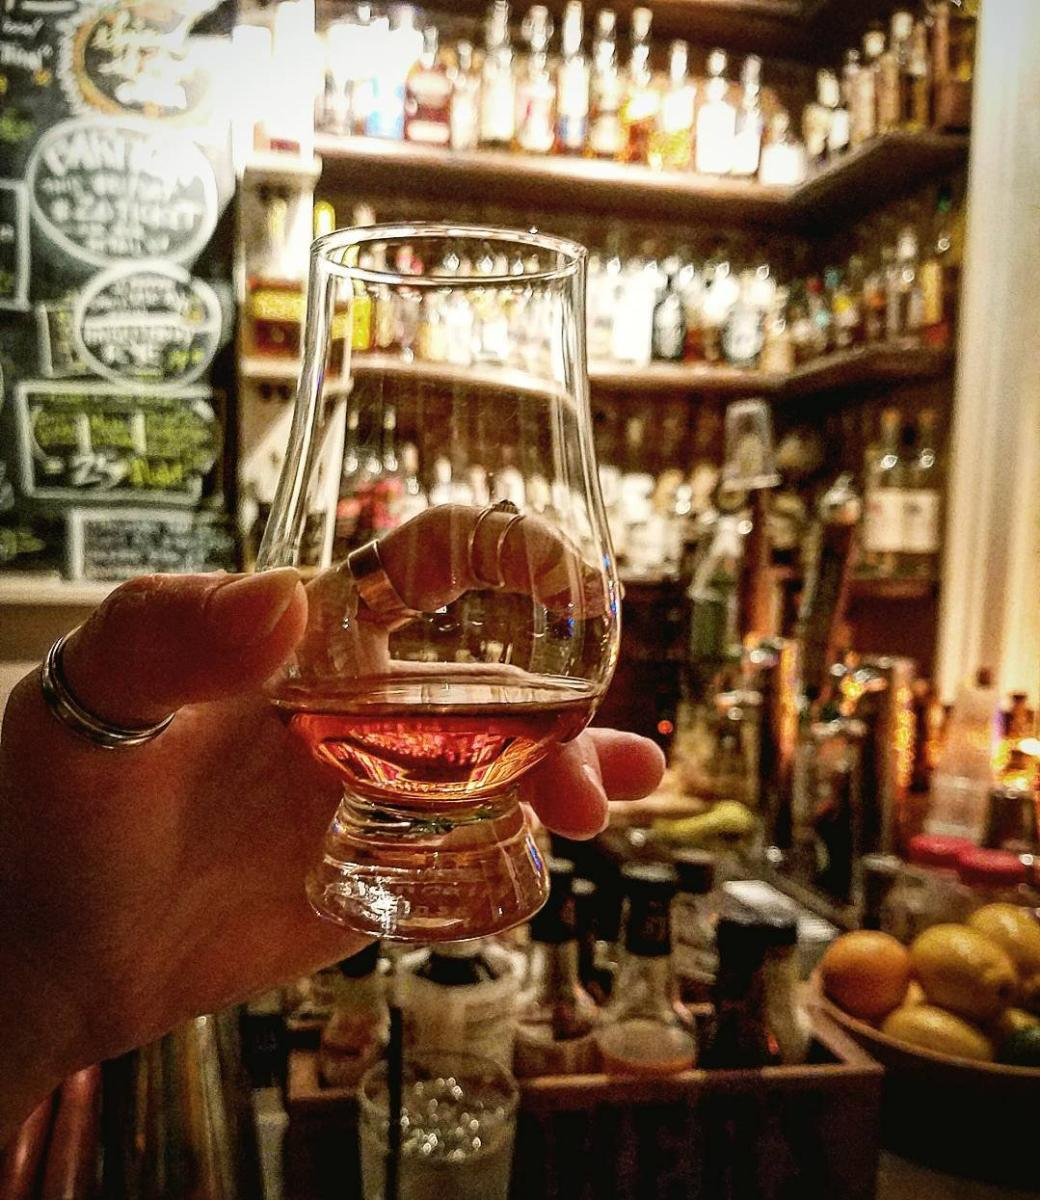 Glencairn glass of bourbon held up with Old Kentucky Bourbon Bar's huge bourbon collection behind it.